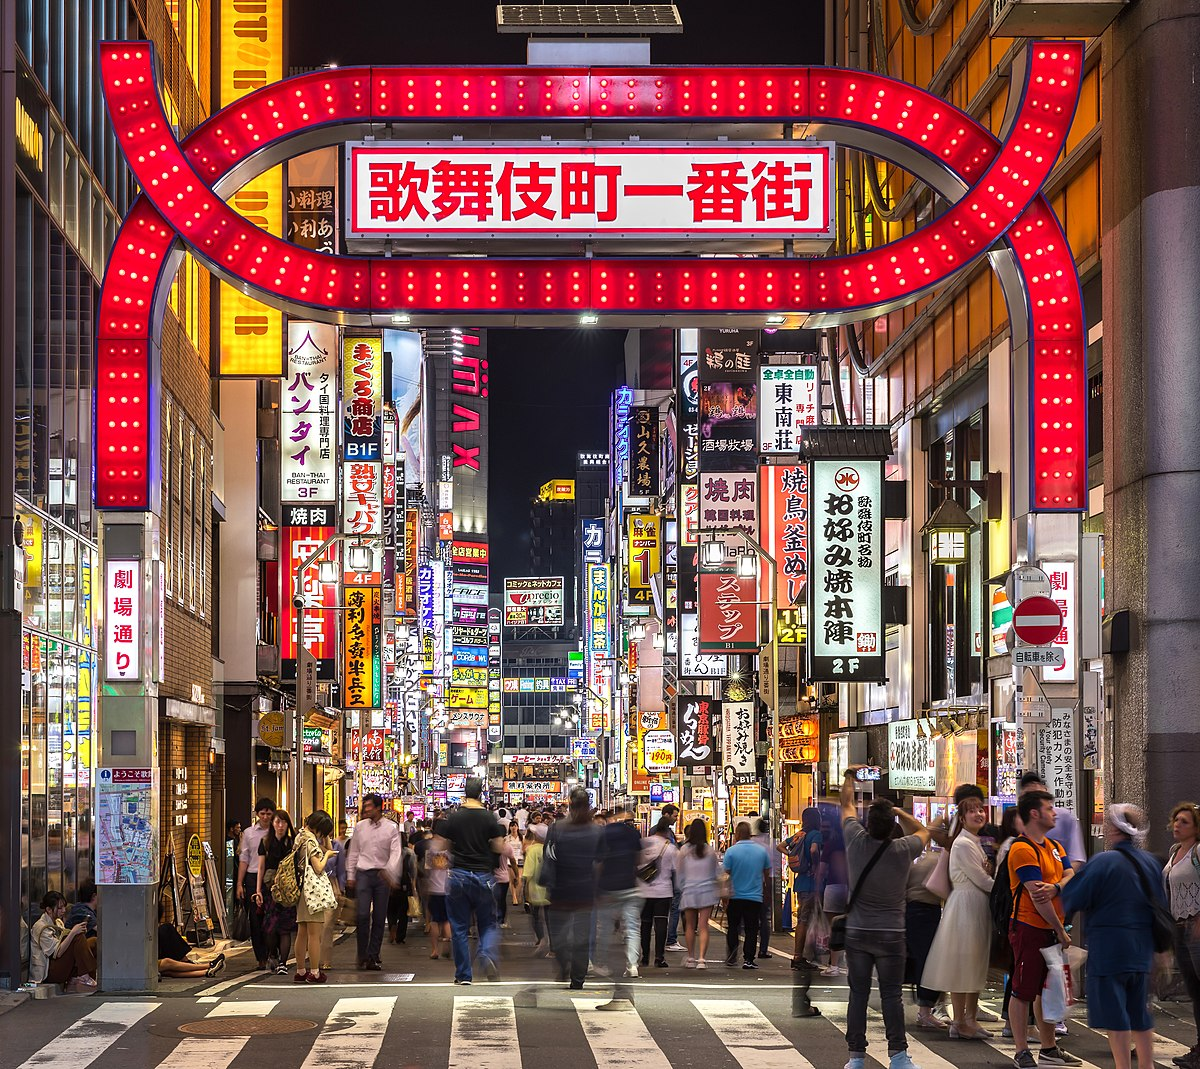 Kabukicho red gate and colorful neon street signs at night, Shinjuku, Tokyo, Japan.jpg